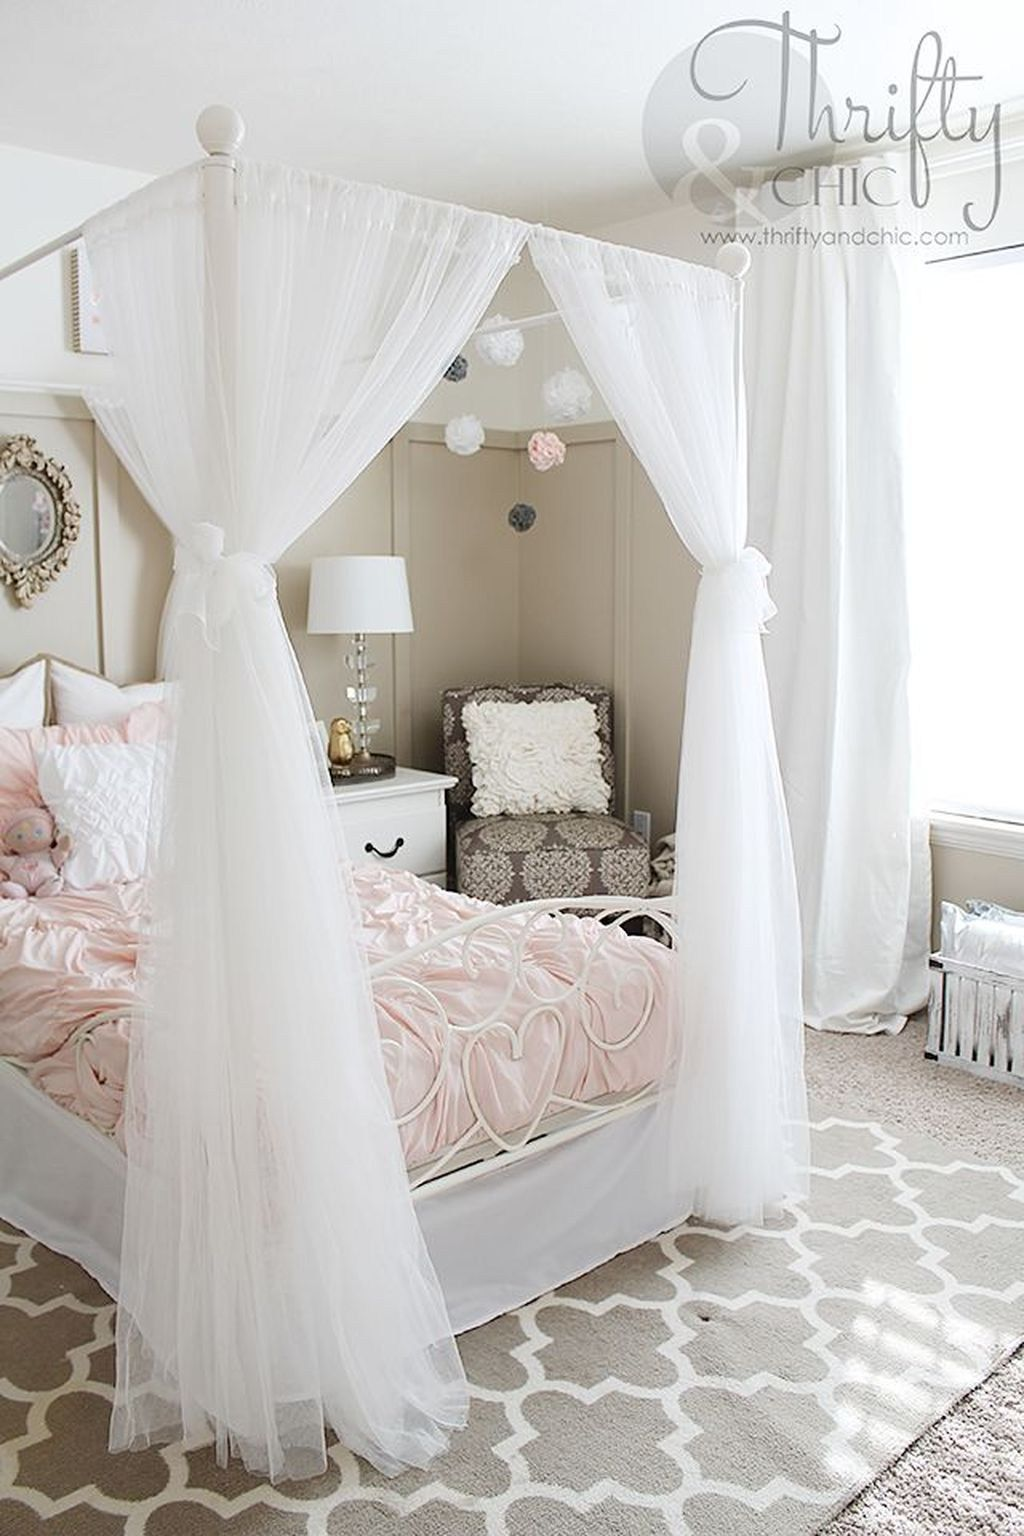 41 Glamorous Canopy Beds Ideas For Romantic Bedroom Girls